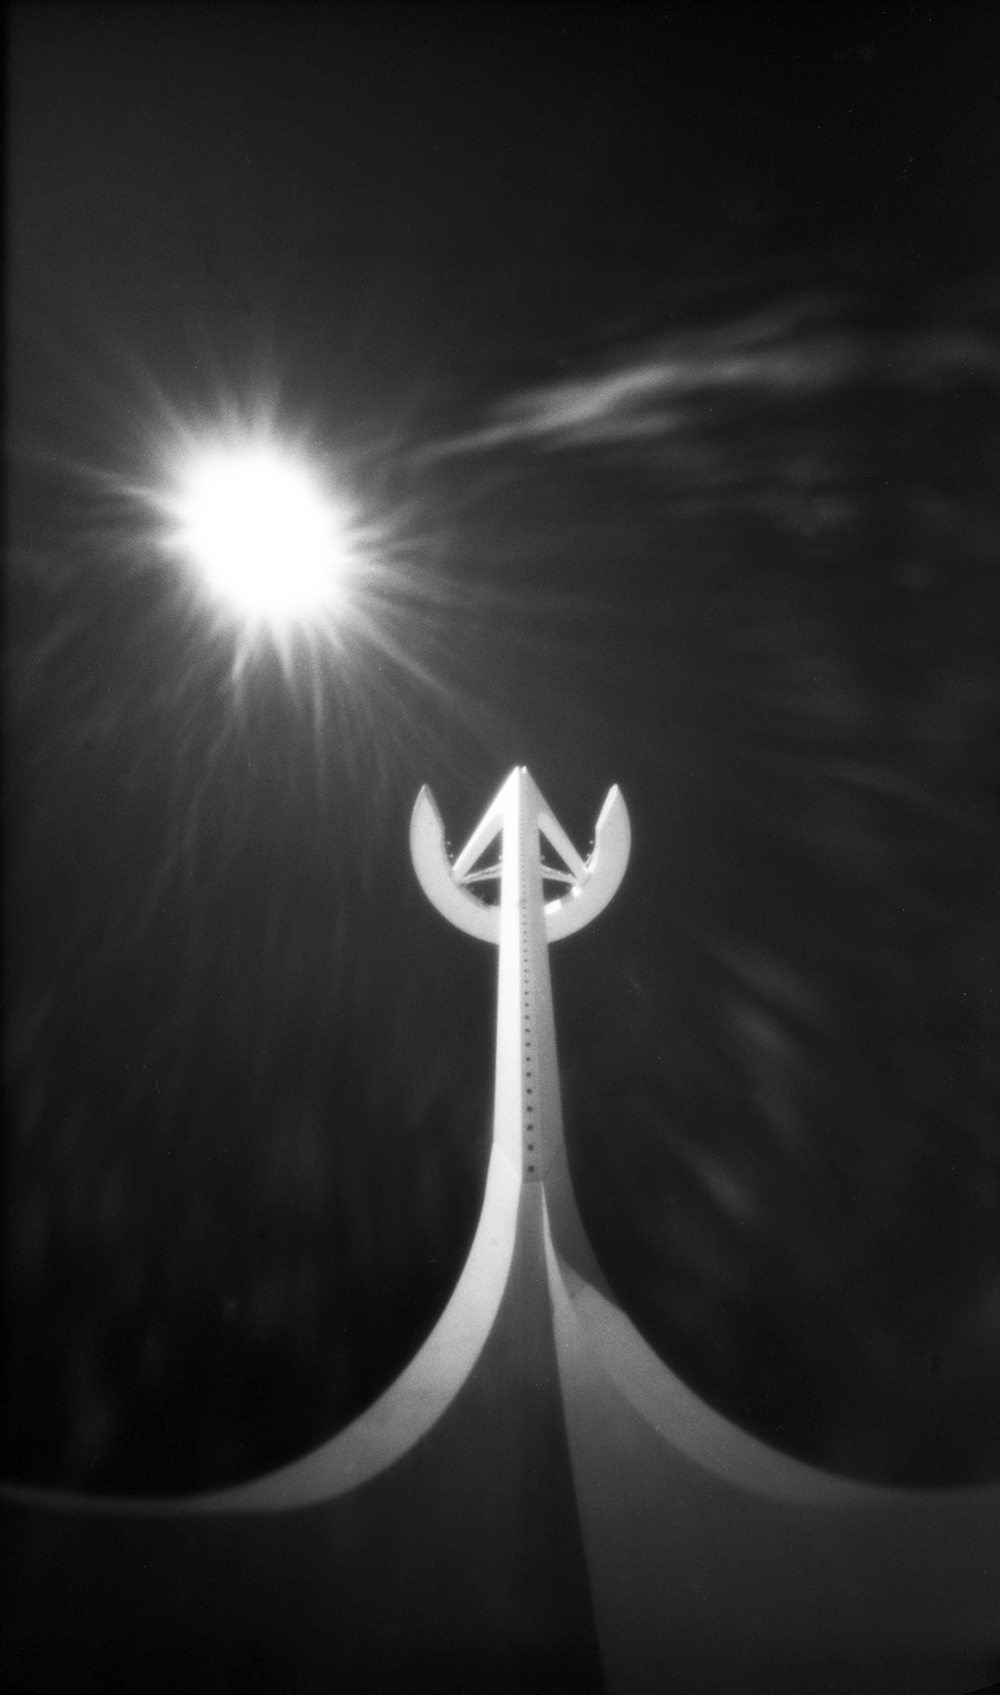 Communications tower - Barcelona, Spain - Efke IR 820 in a 8banners 6x9 pinhole camera with Hoya R72 filter